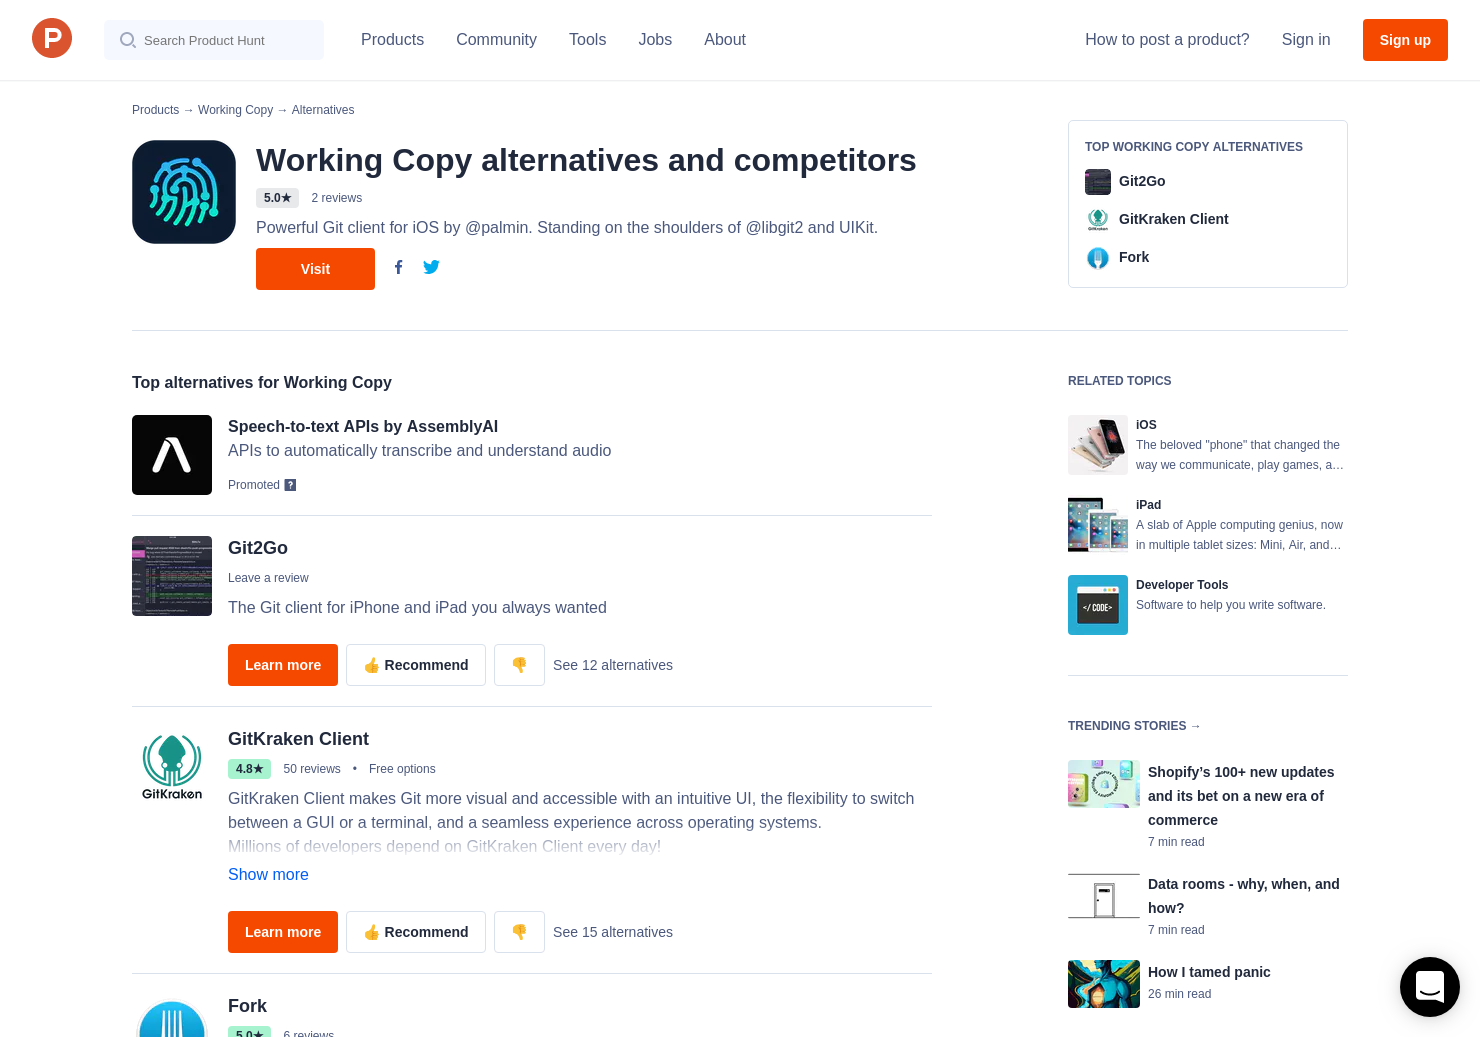 8 Alternatives to Working Copy 3 for iPhone, iPad | Product Hunt